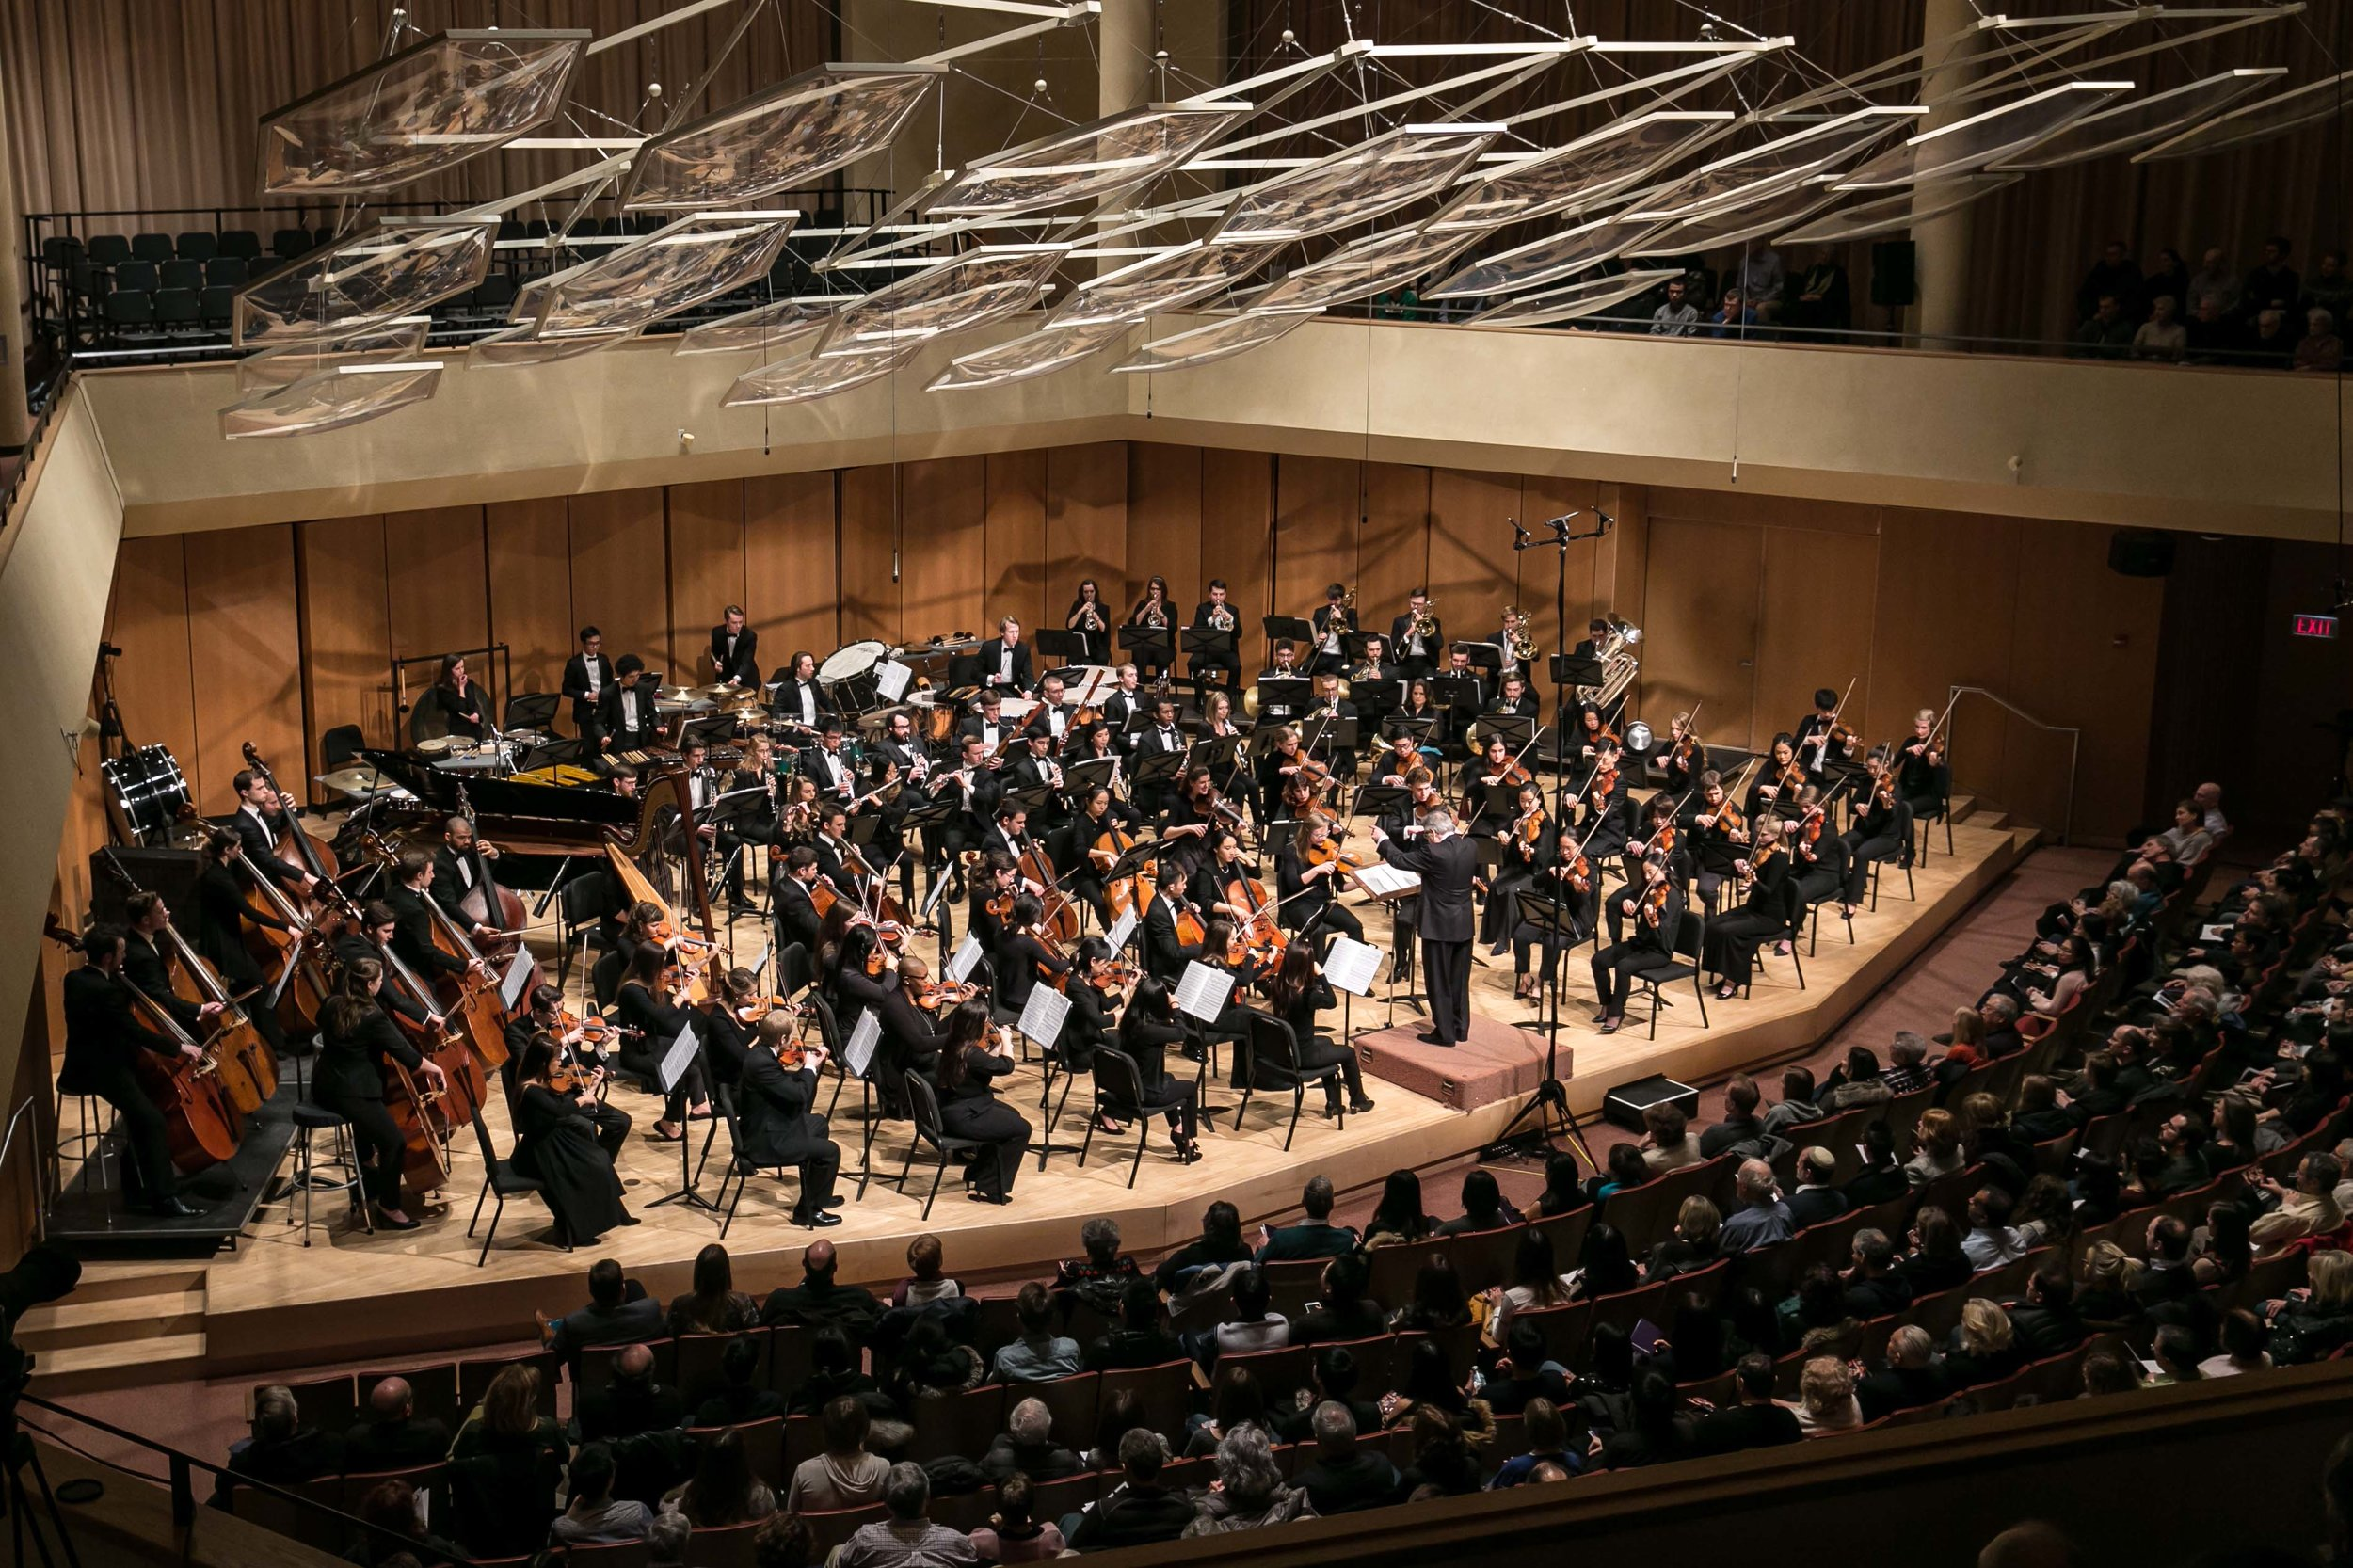 Victor Yampolsky leads the Northwestern University Symphony Orchestra before a packed house at Pick-Staiger Concert Hall, February 3, 2018.